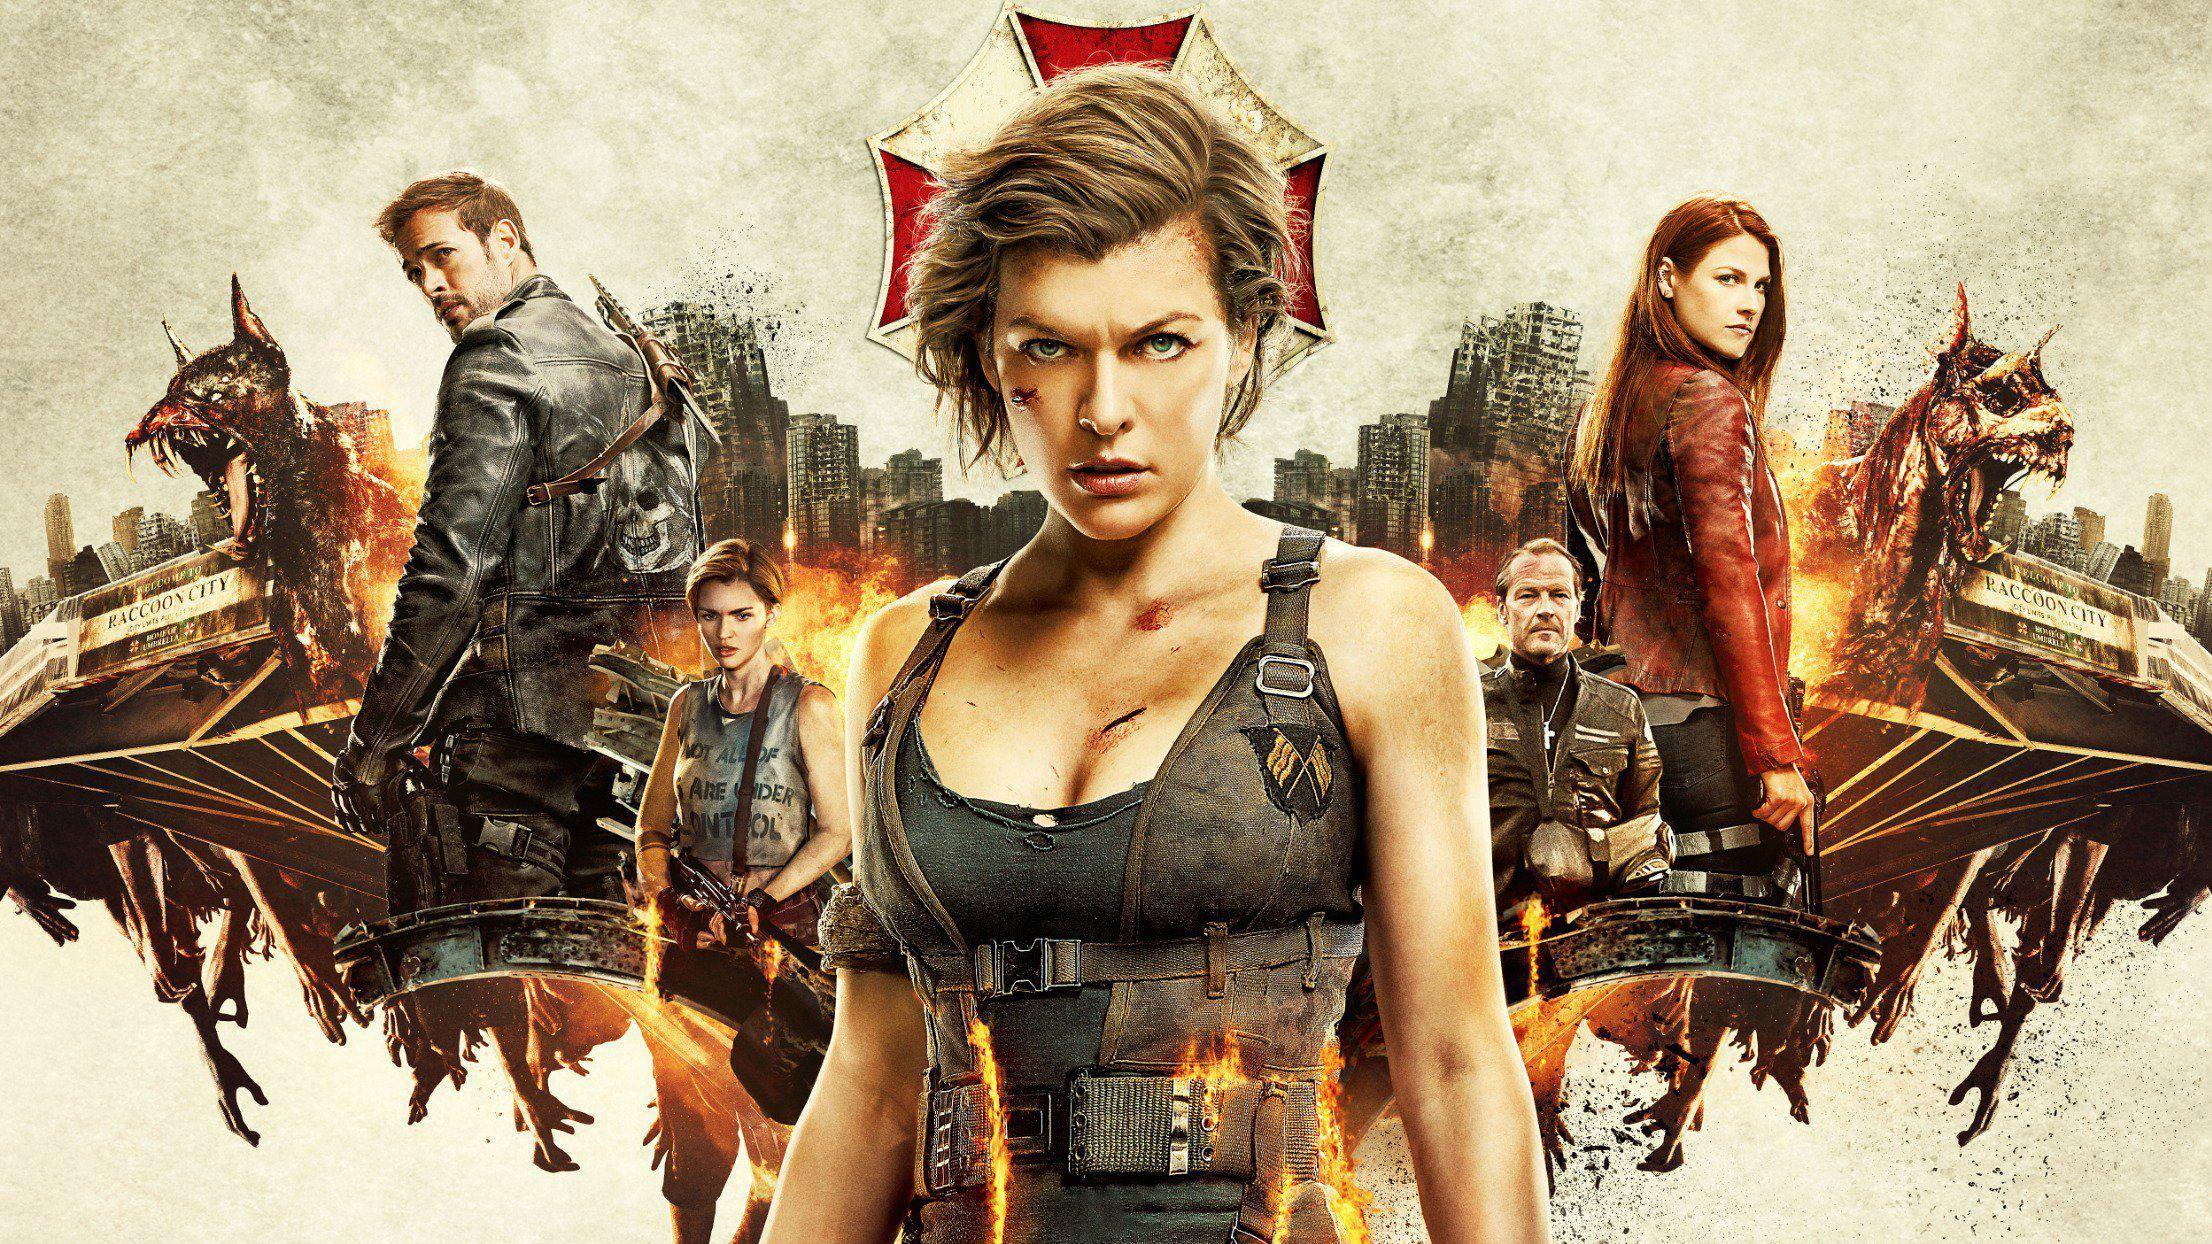 Resident Evil: The Final Chapter Wallpapers - Wallpaper Cave